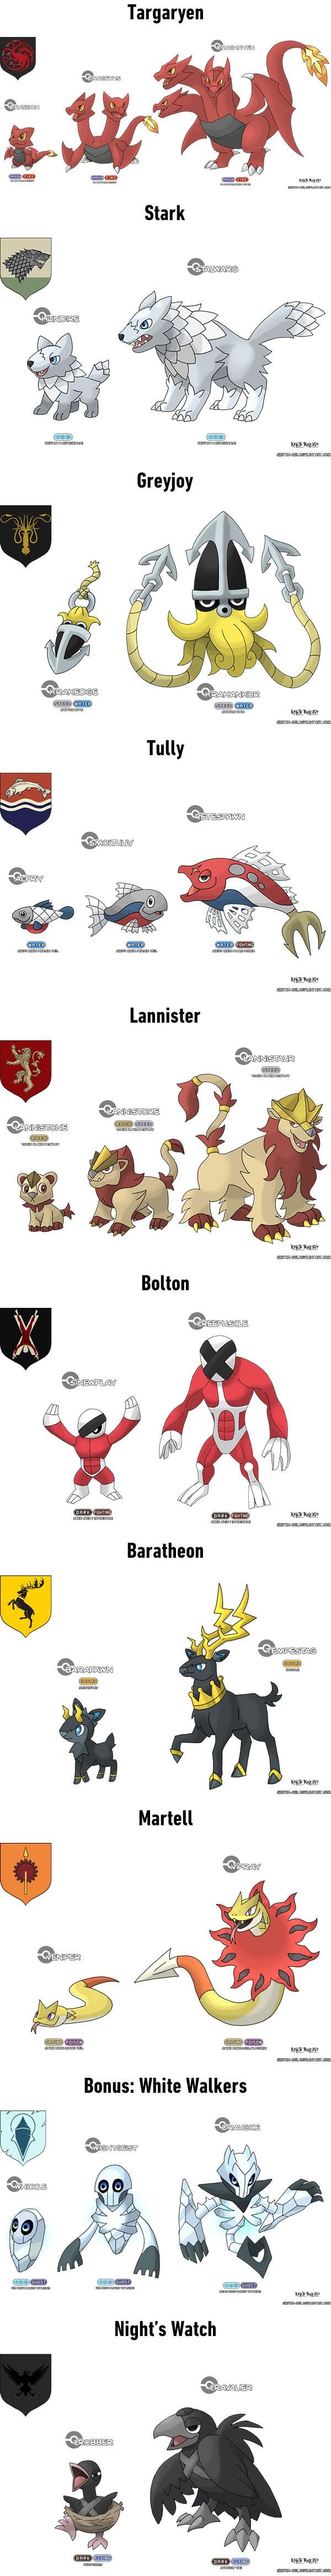 Game of Thrones House Sigils Illustrated as Pokémon Characters - 9GAG